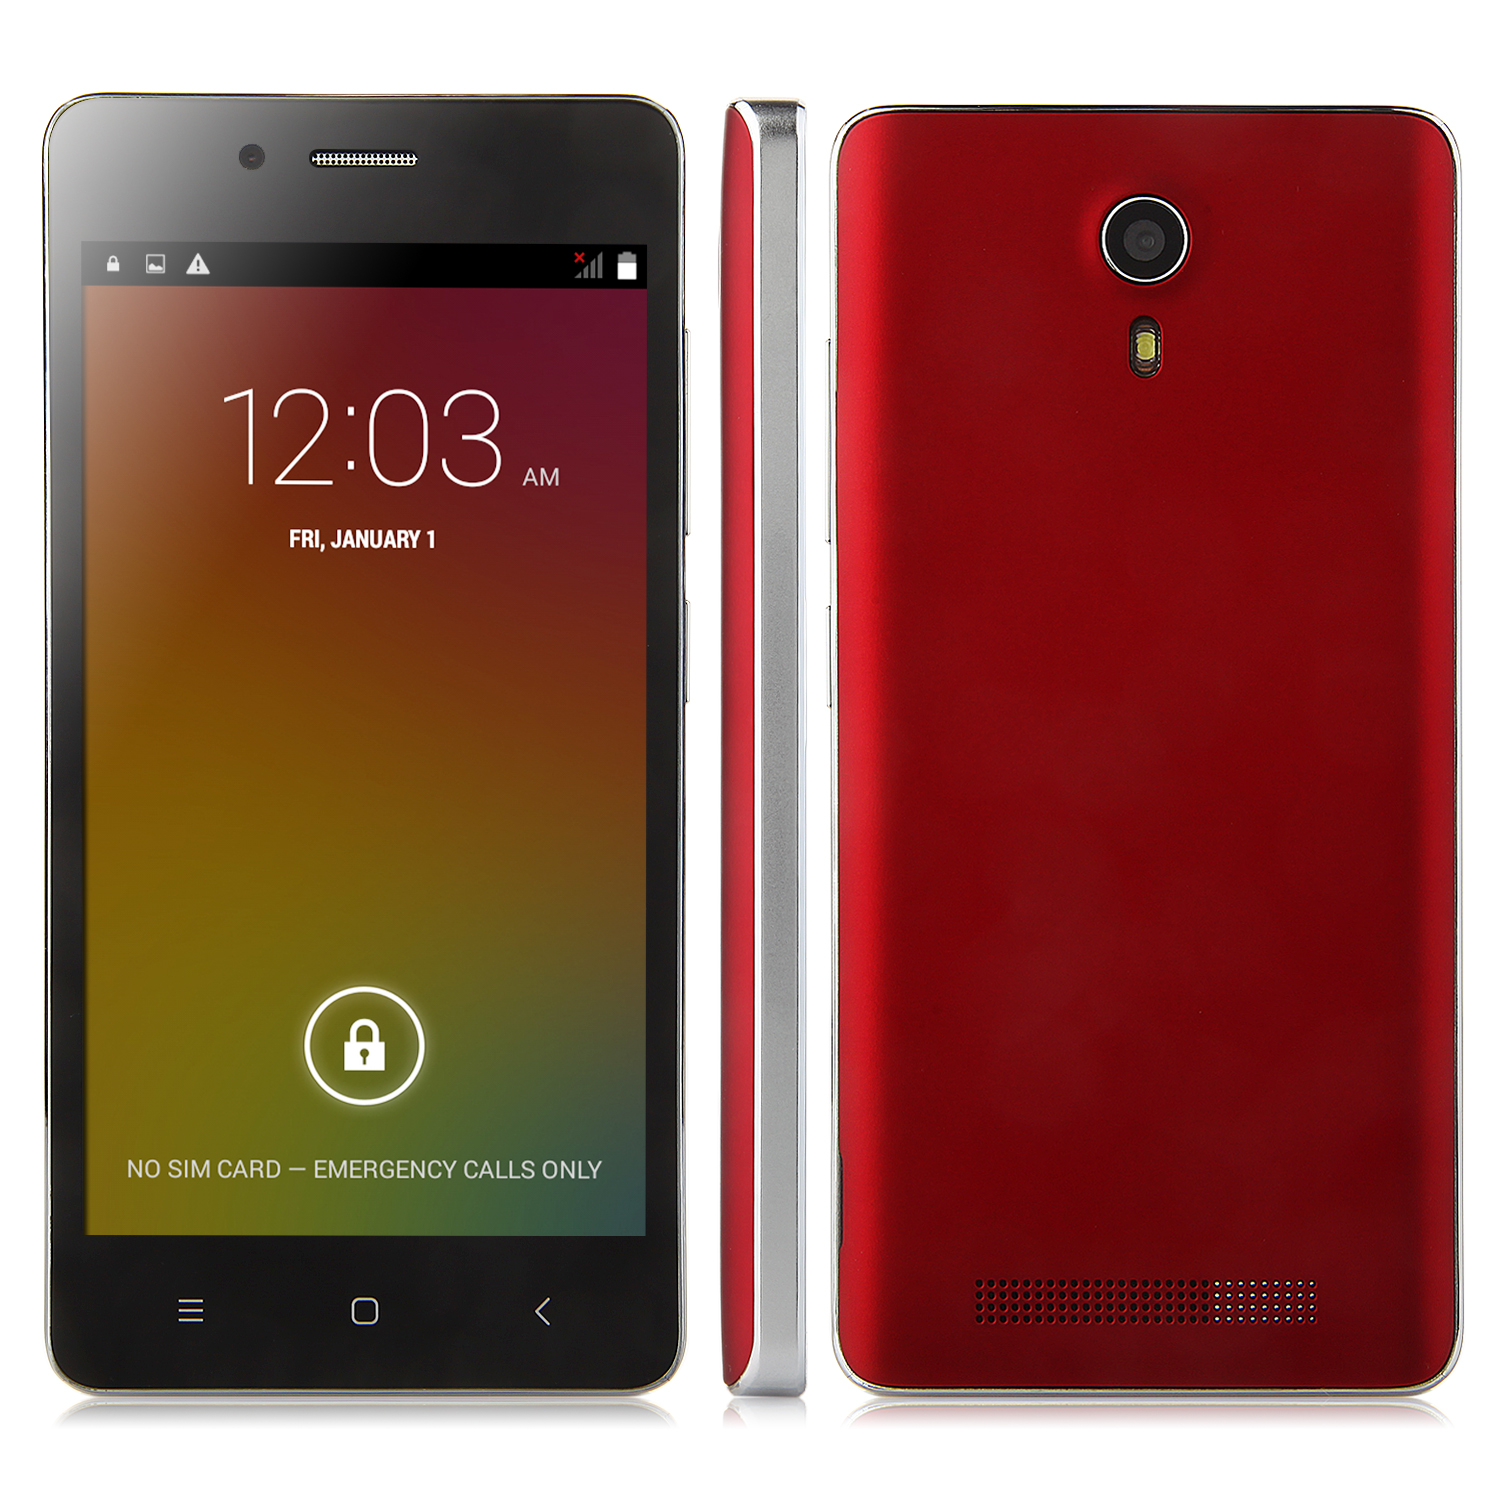 Tengda V19 Smartphone Android 4.4 MTK6572W 4.5 Inch 3G GPS Red